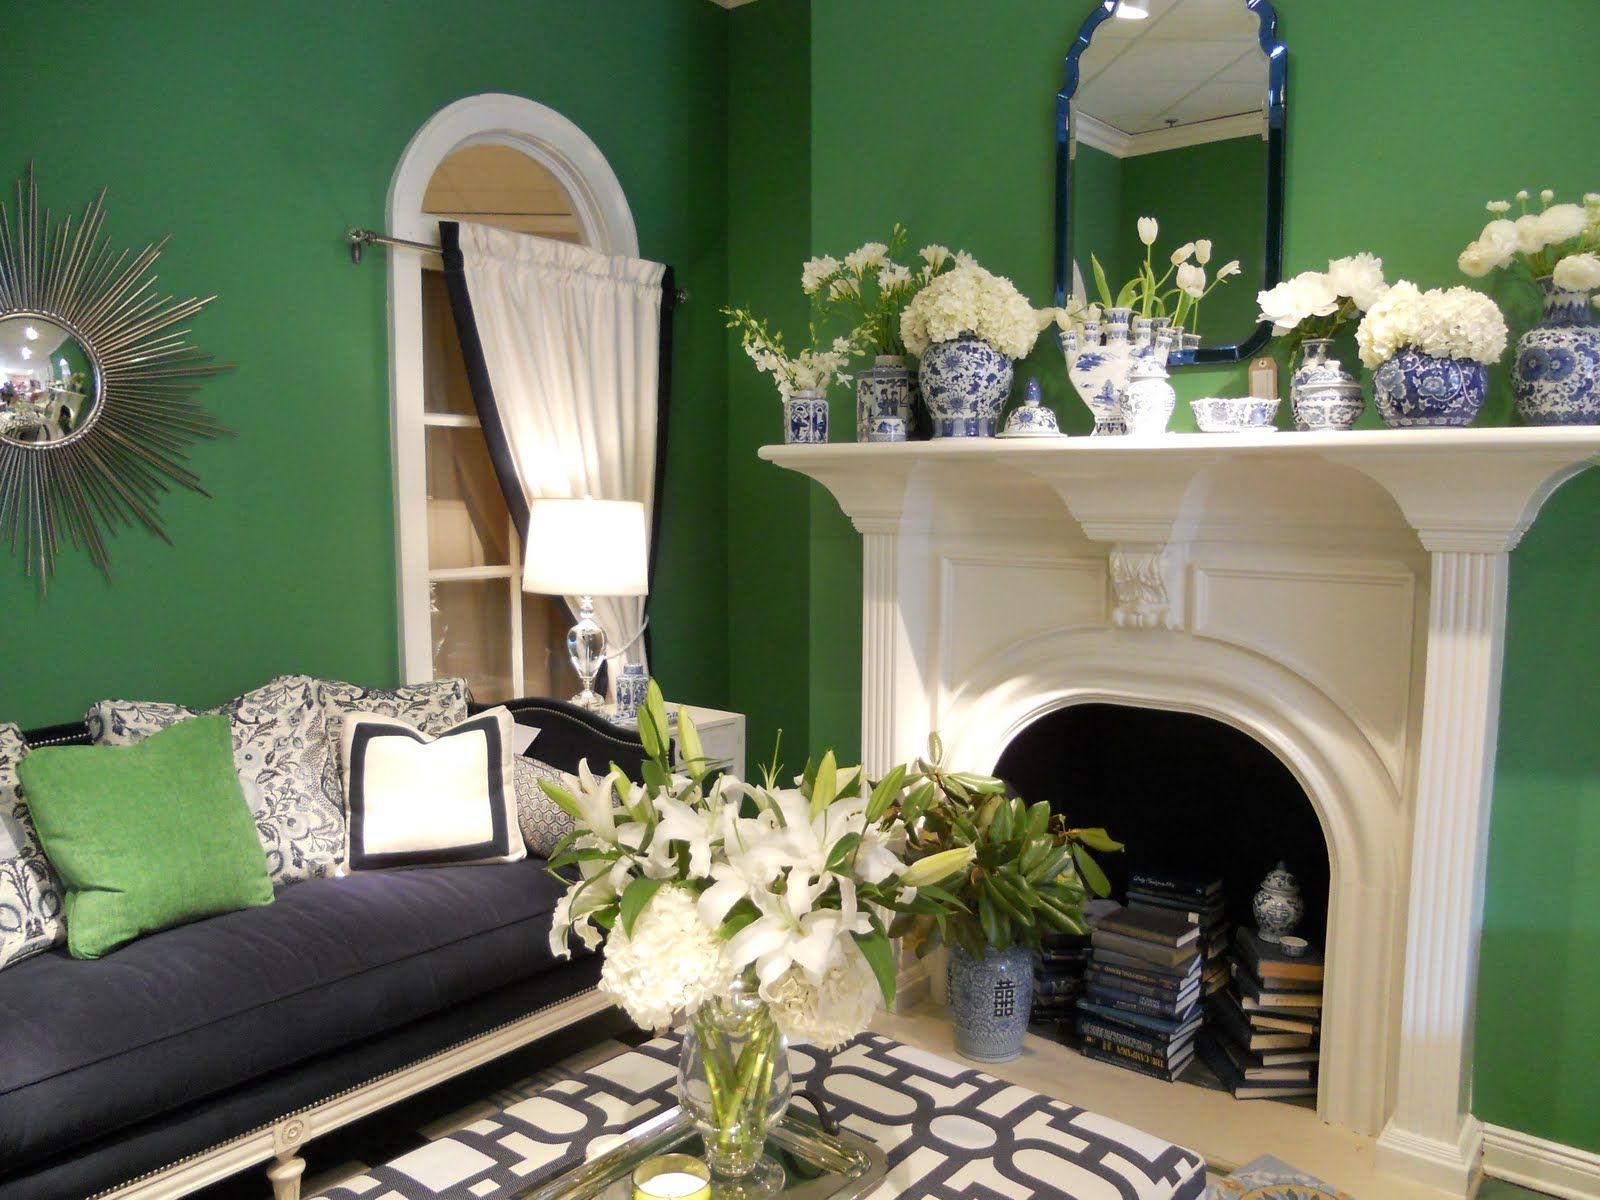 classic white fireplace offsetkelly green walls, competing